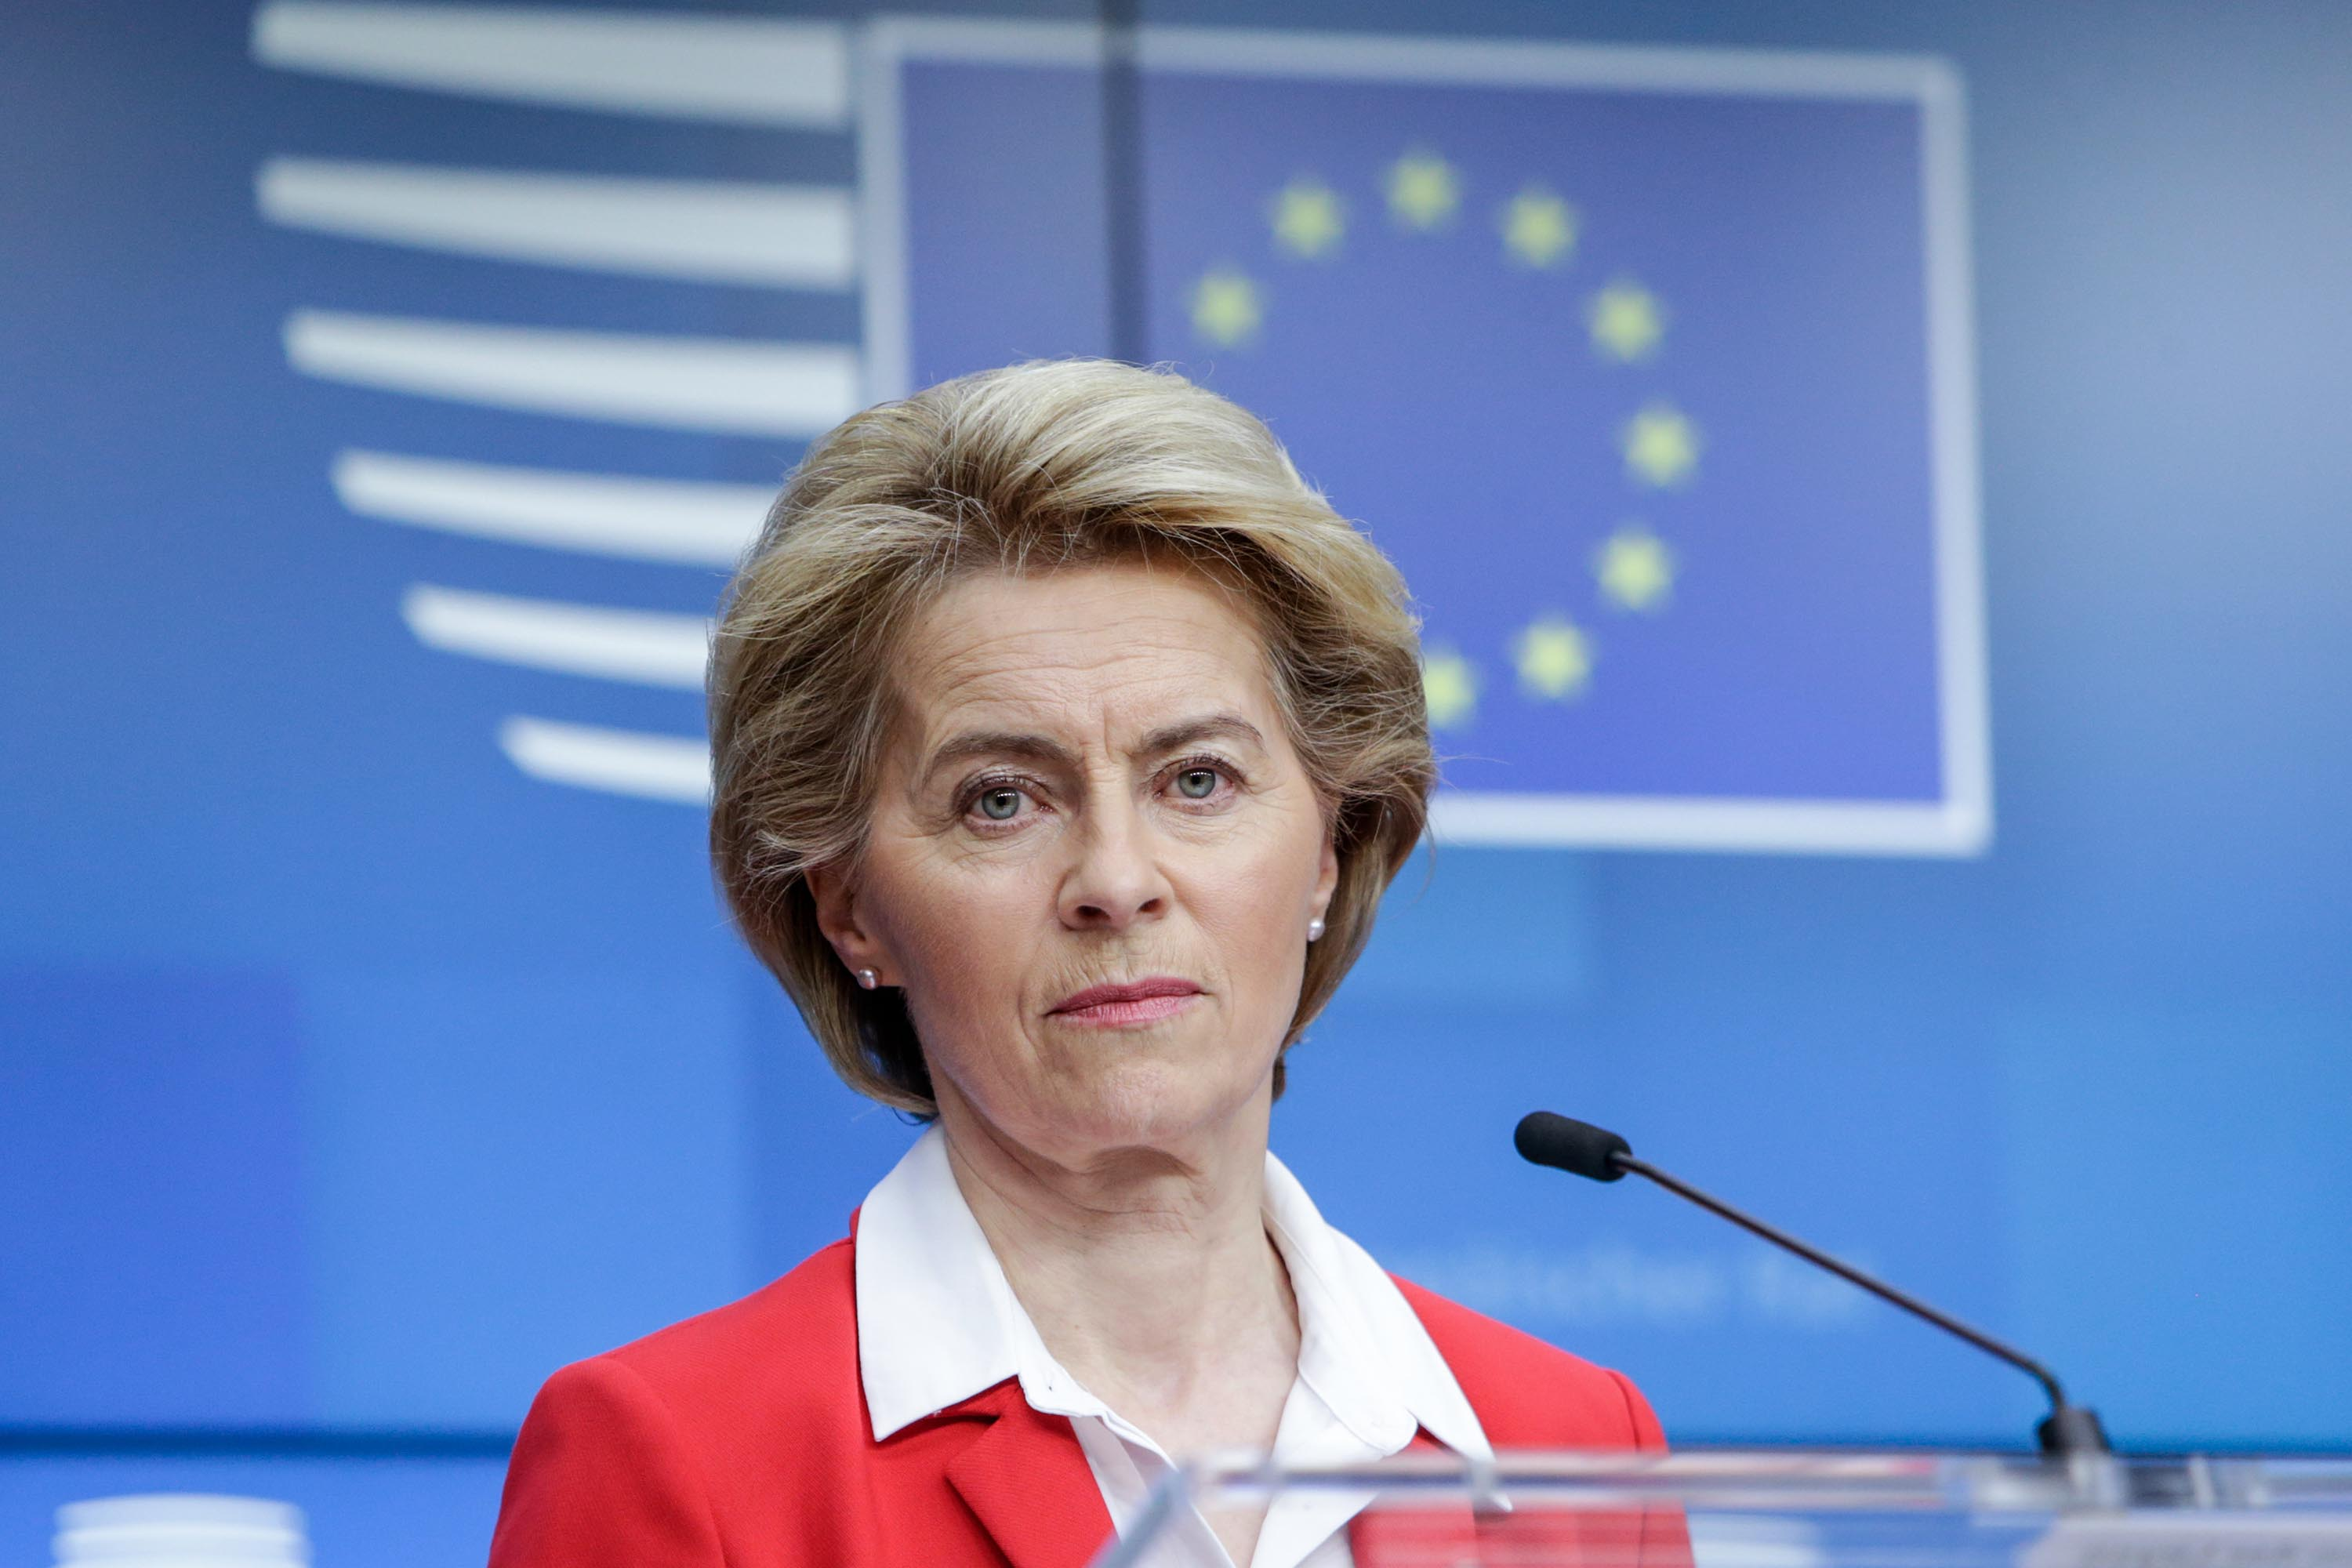 President of European Commission Ursula Von der Leyen gives a press conference in Brussels, Belgium, on March 17.